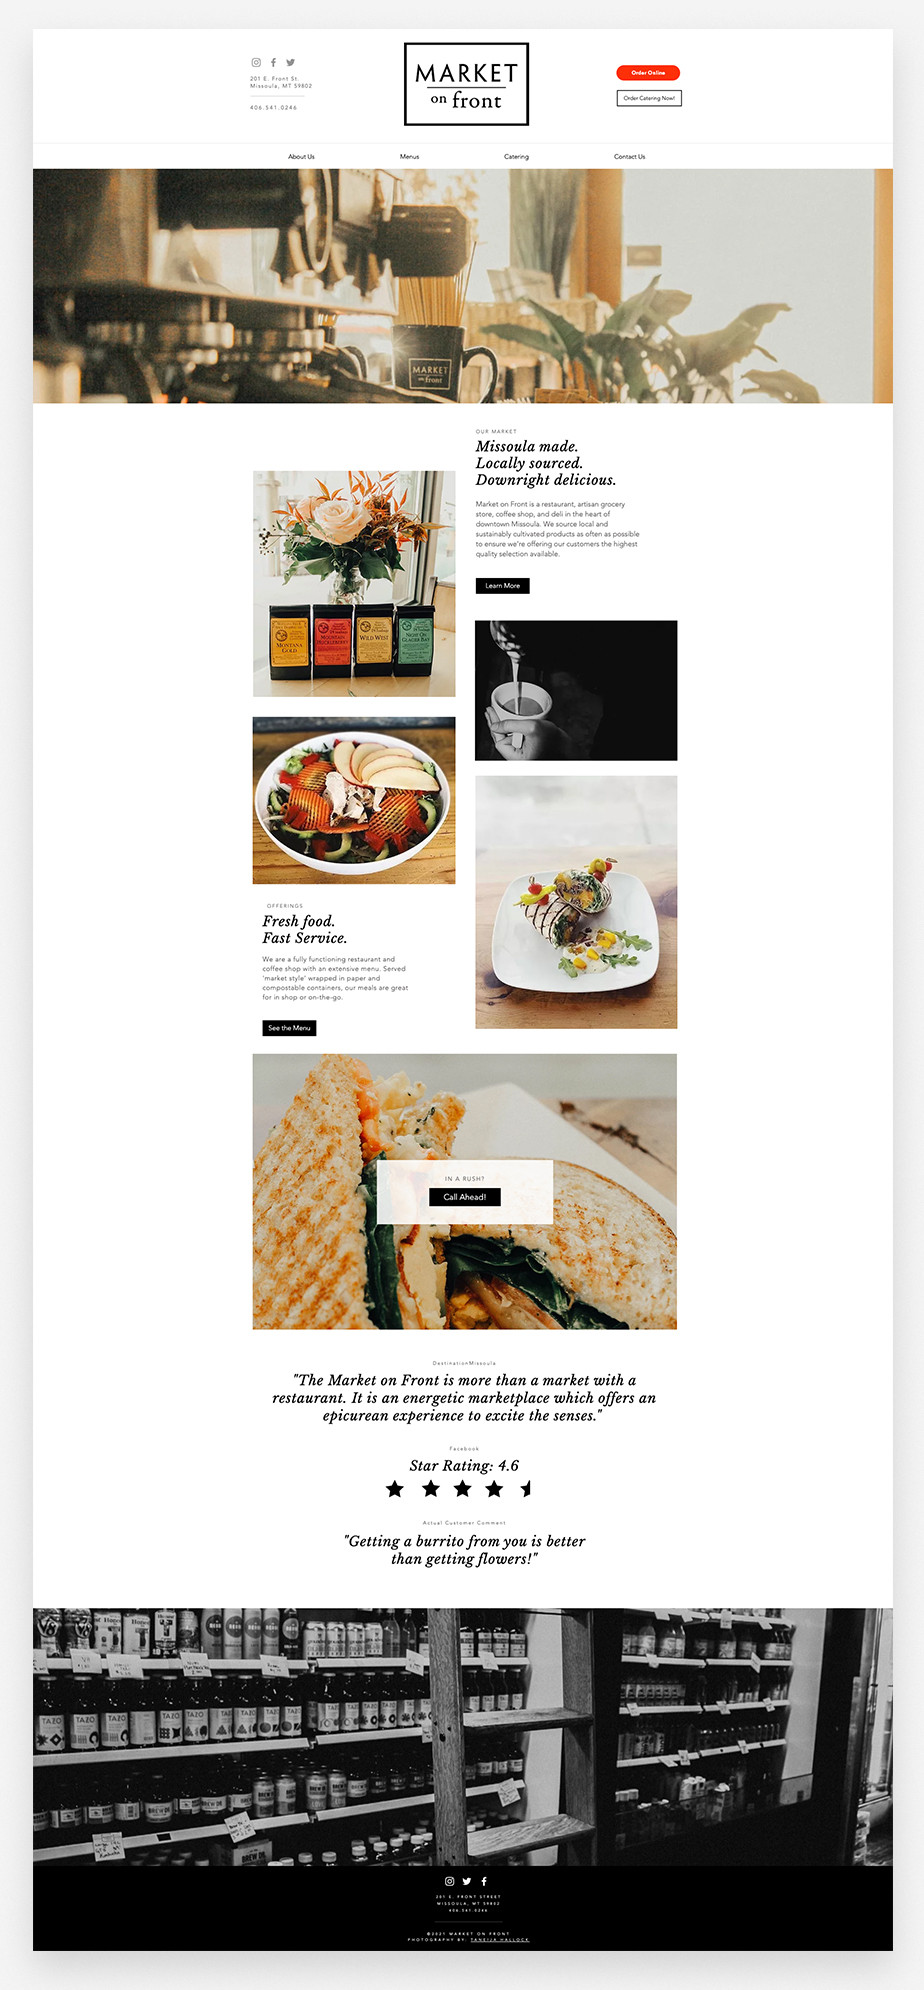 Market on Front restaurant website